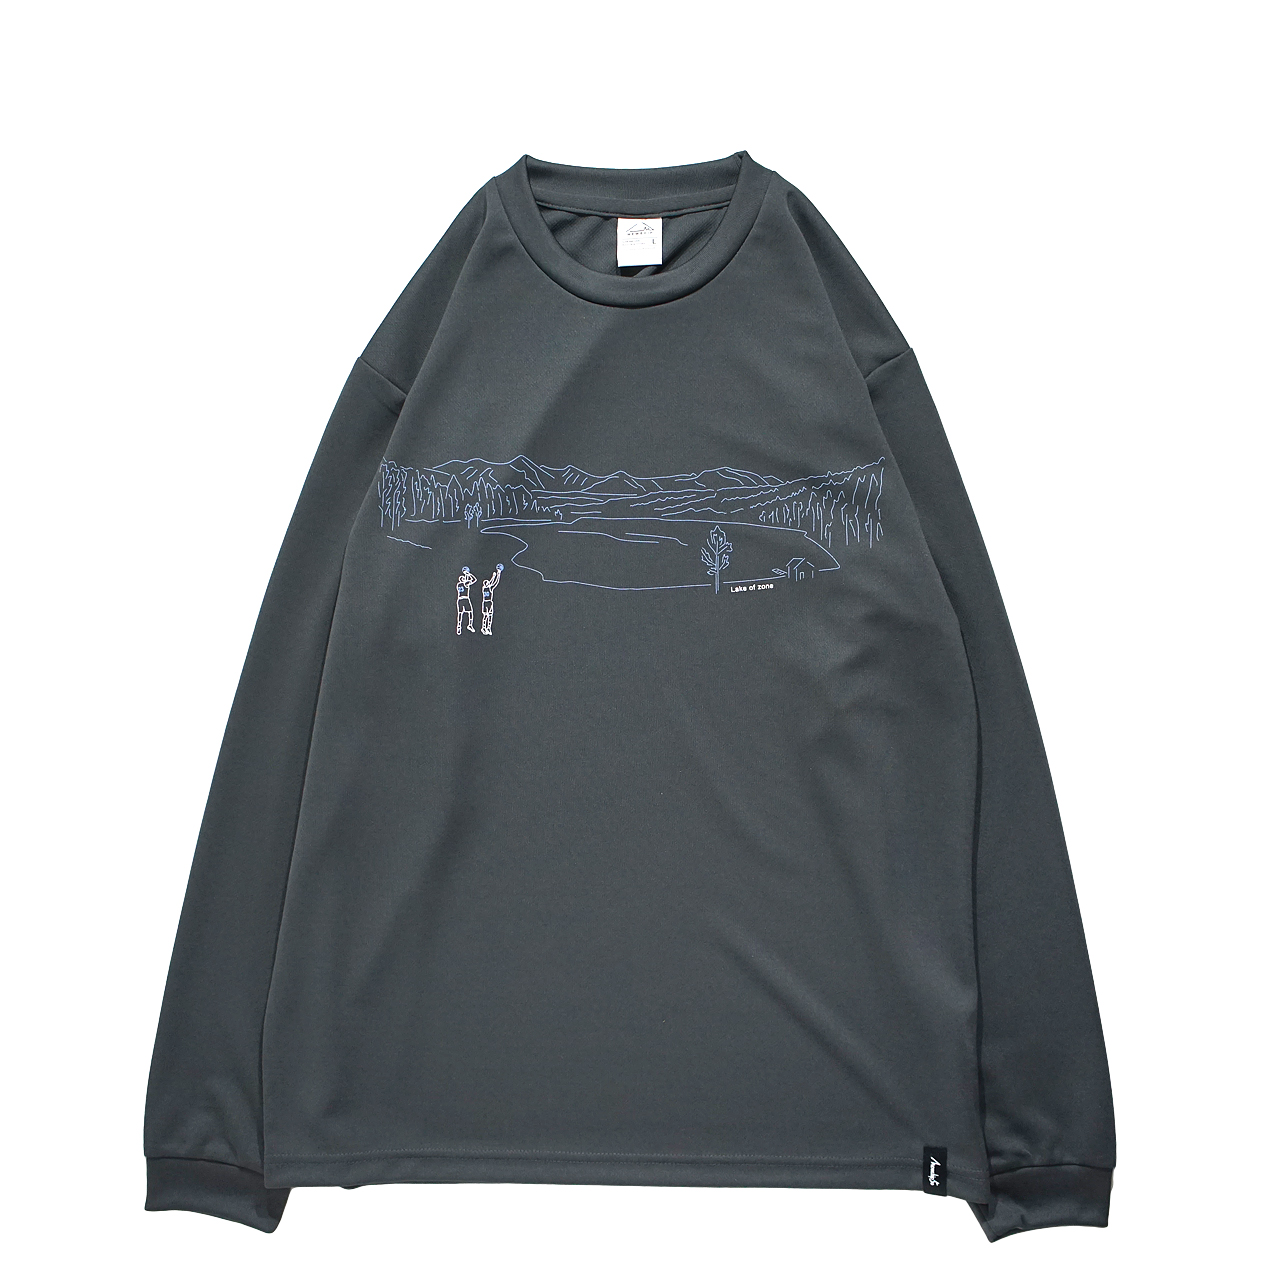 Mewship50 Lake of zone L/S PL <D.Gray×L.Blue×White>